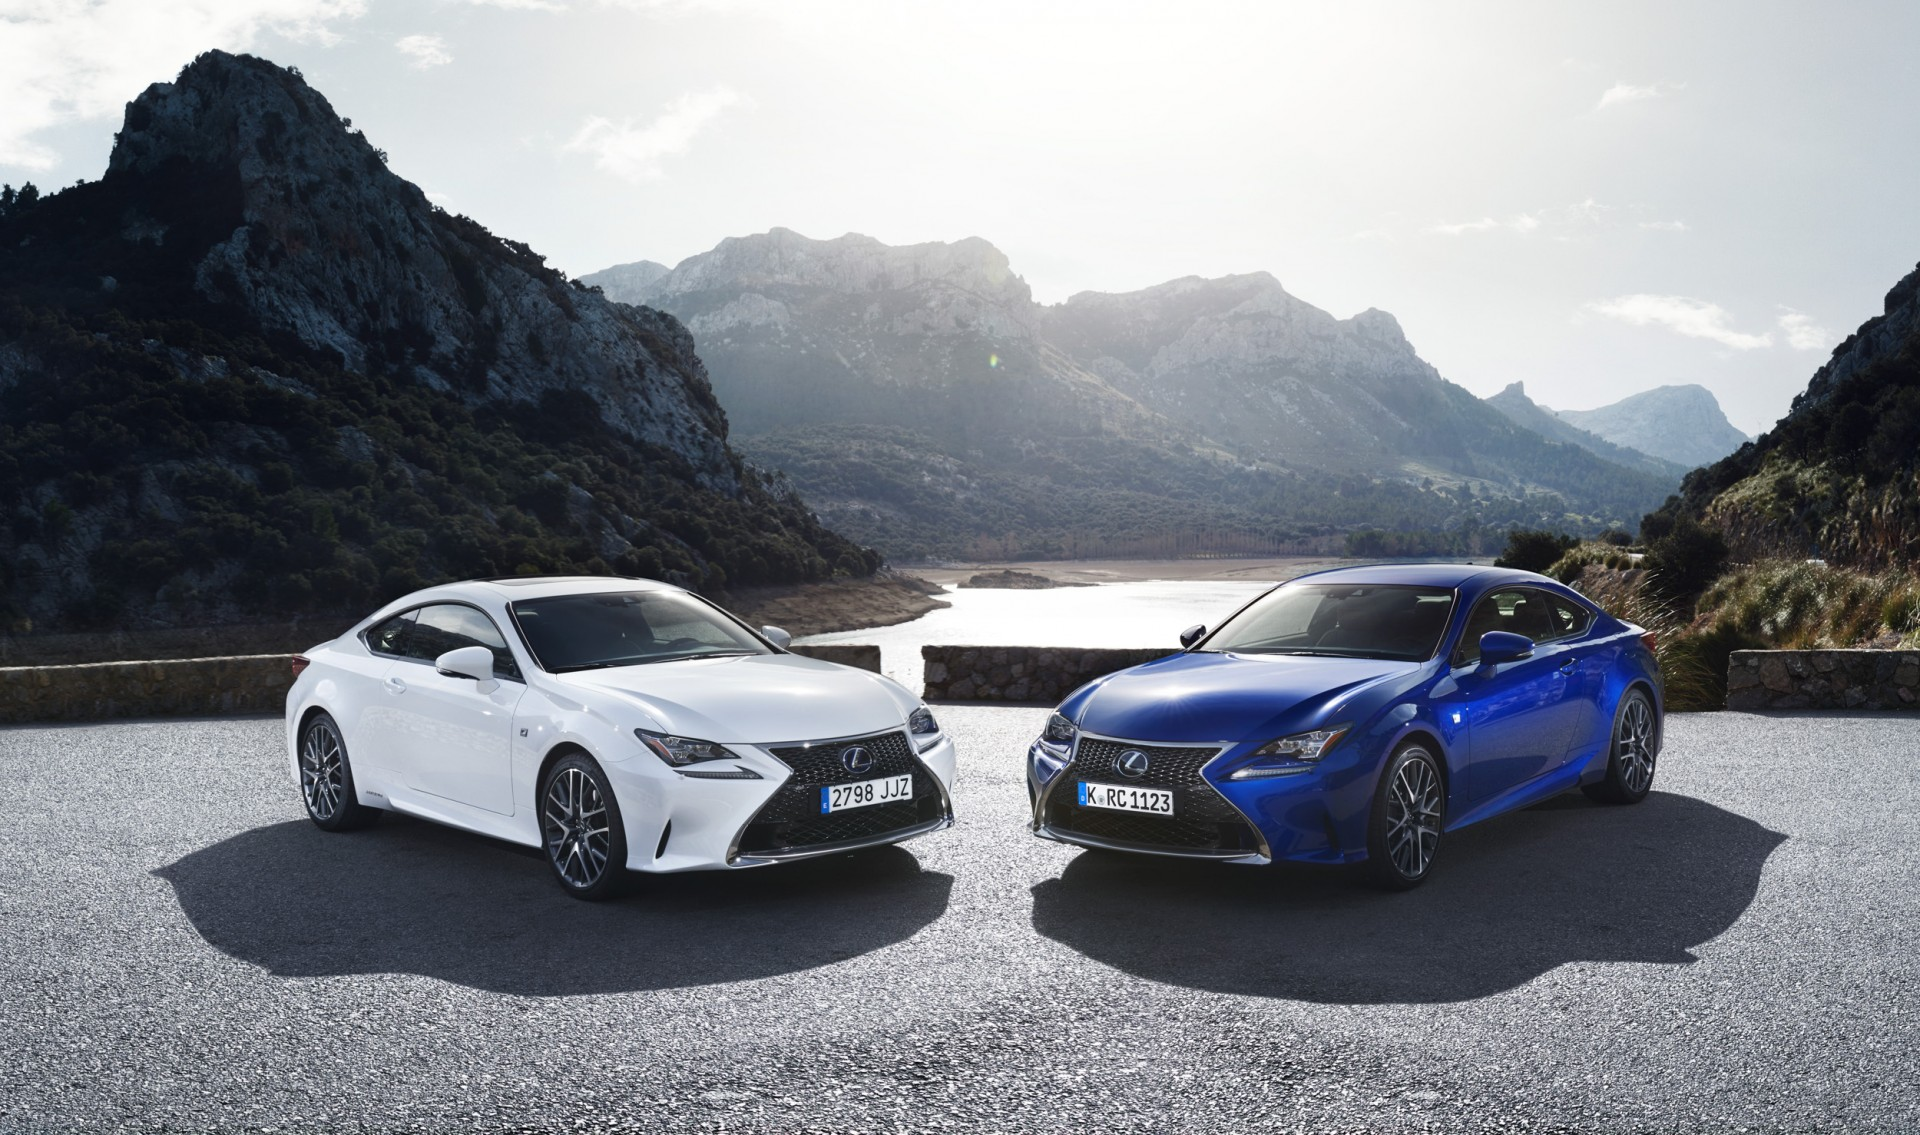 2016 Lexus Rc The New A Premium Two Door Coupe Pairs Provocative Stunning Design With Pleasure Of Engaging And Refined Driving Experience